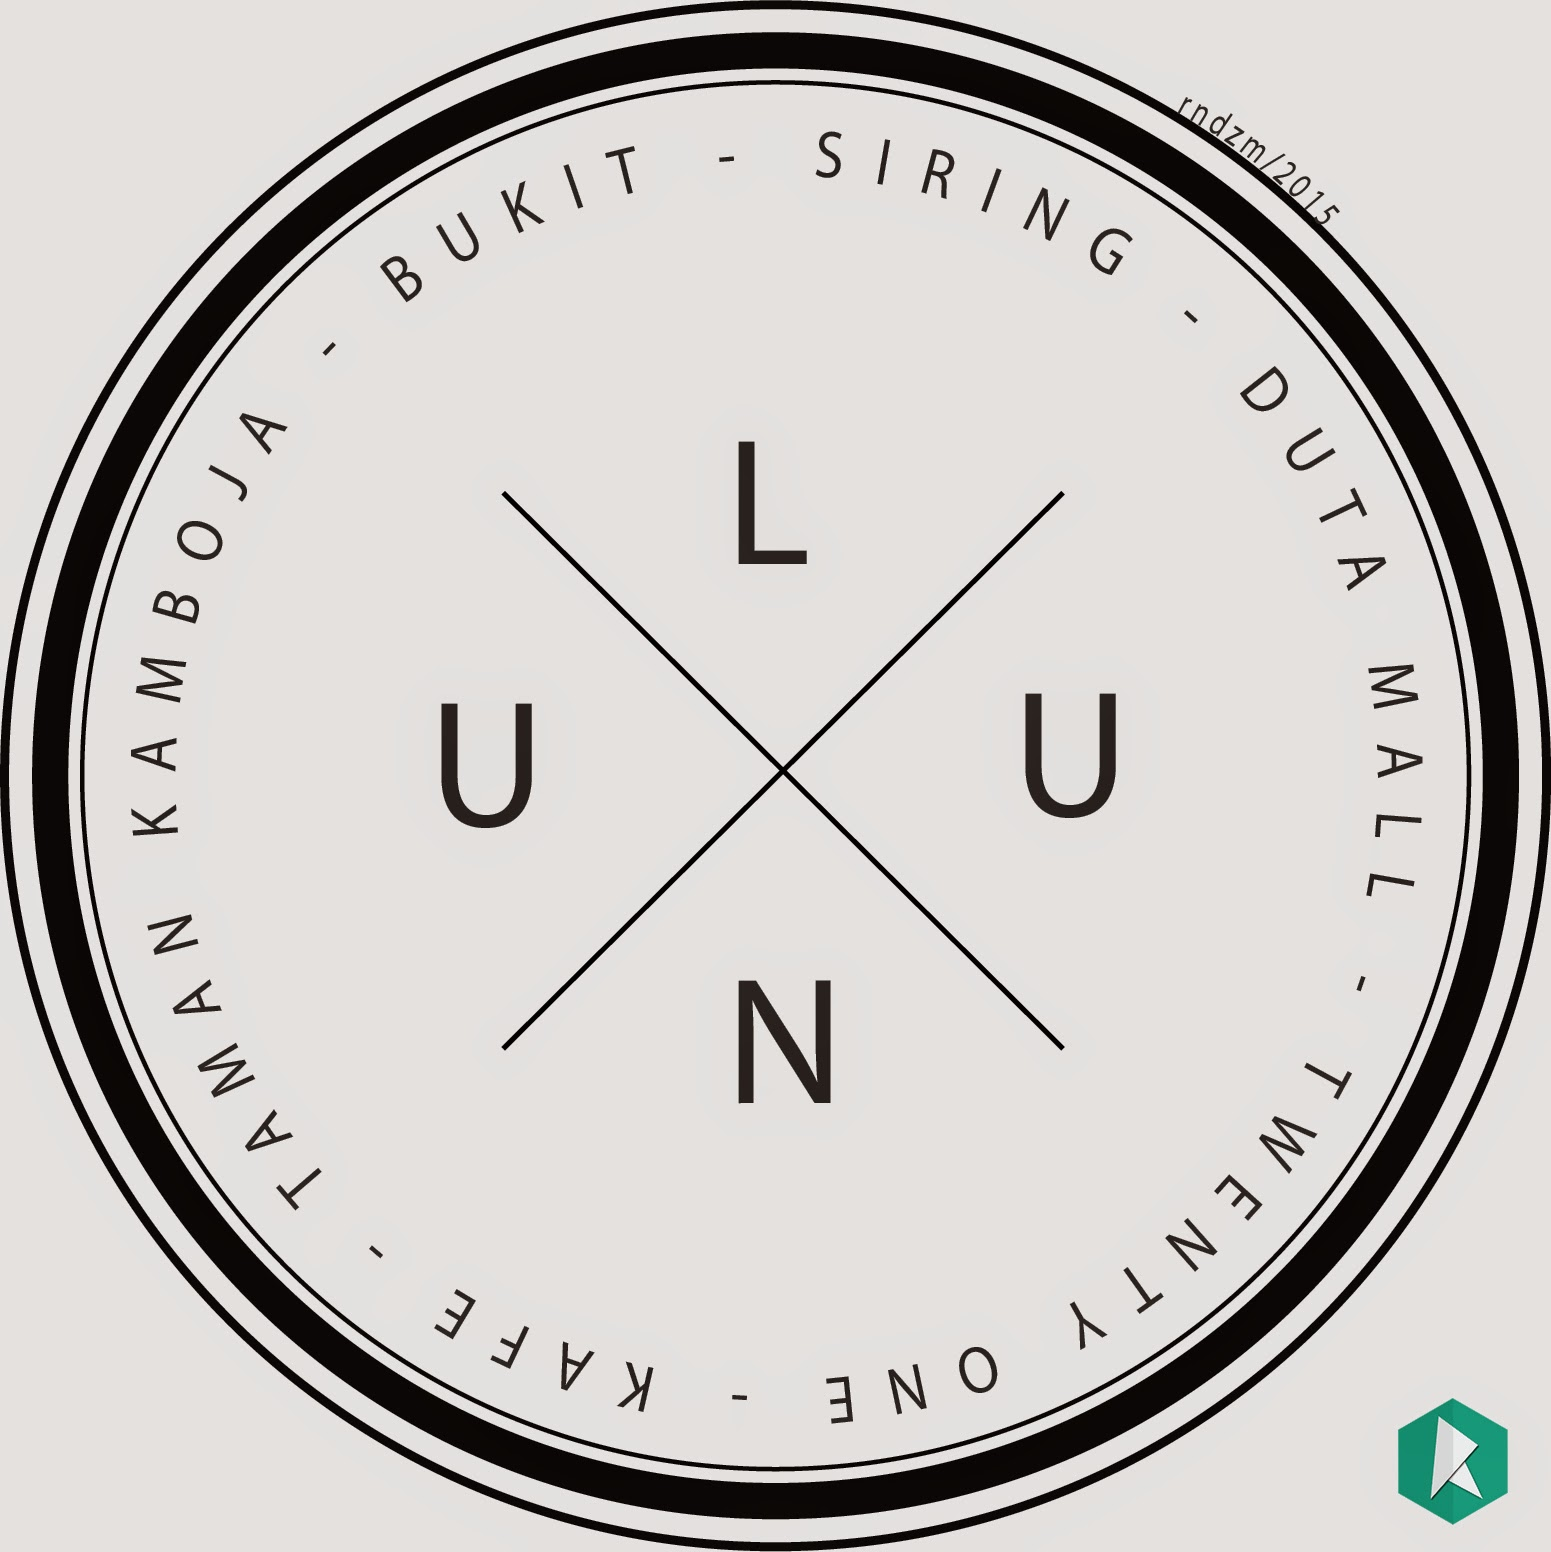 ulun badge vintage logo